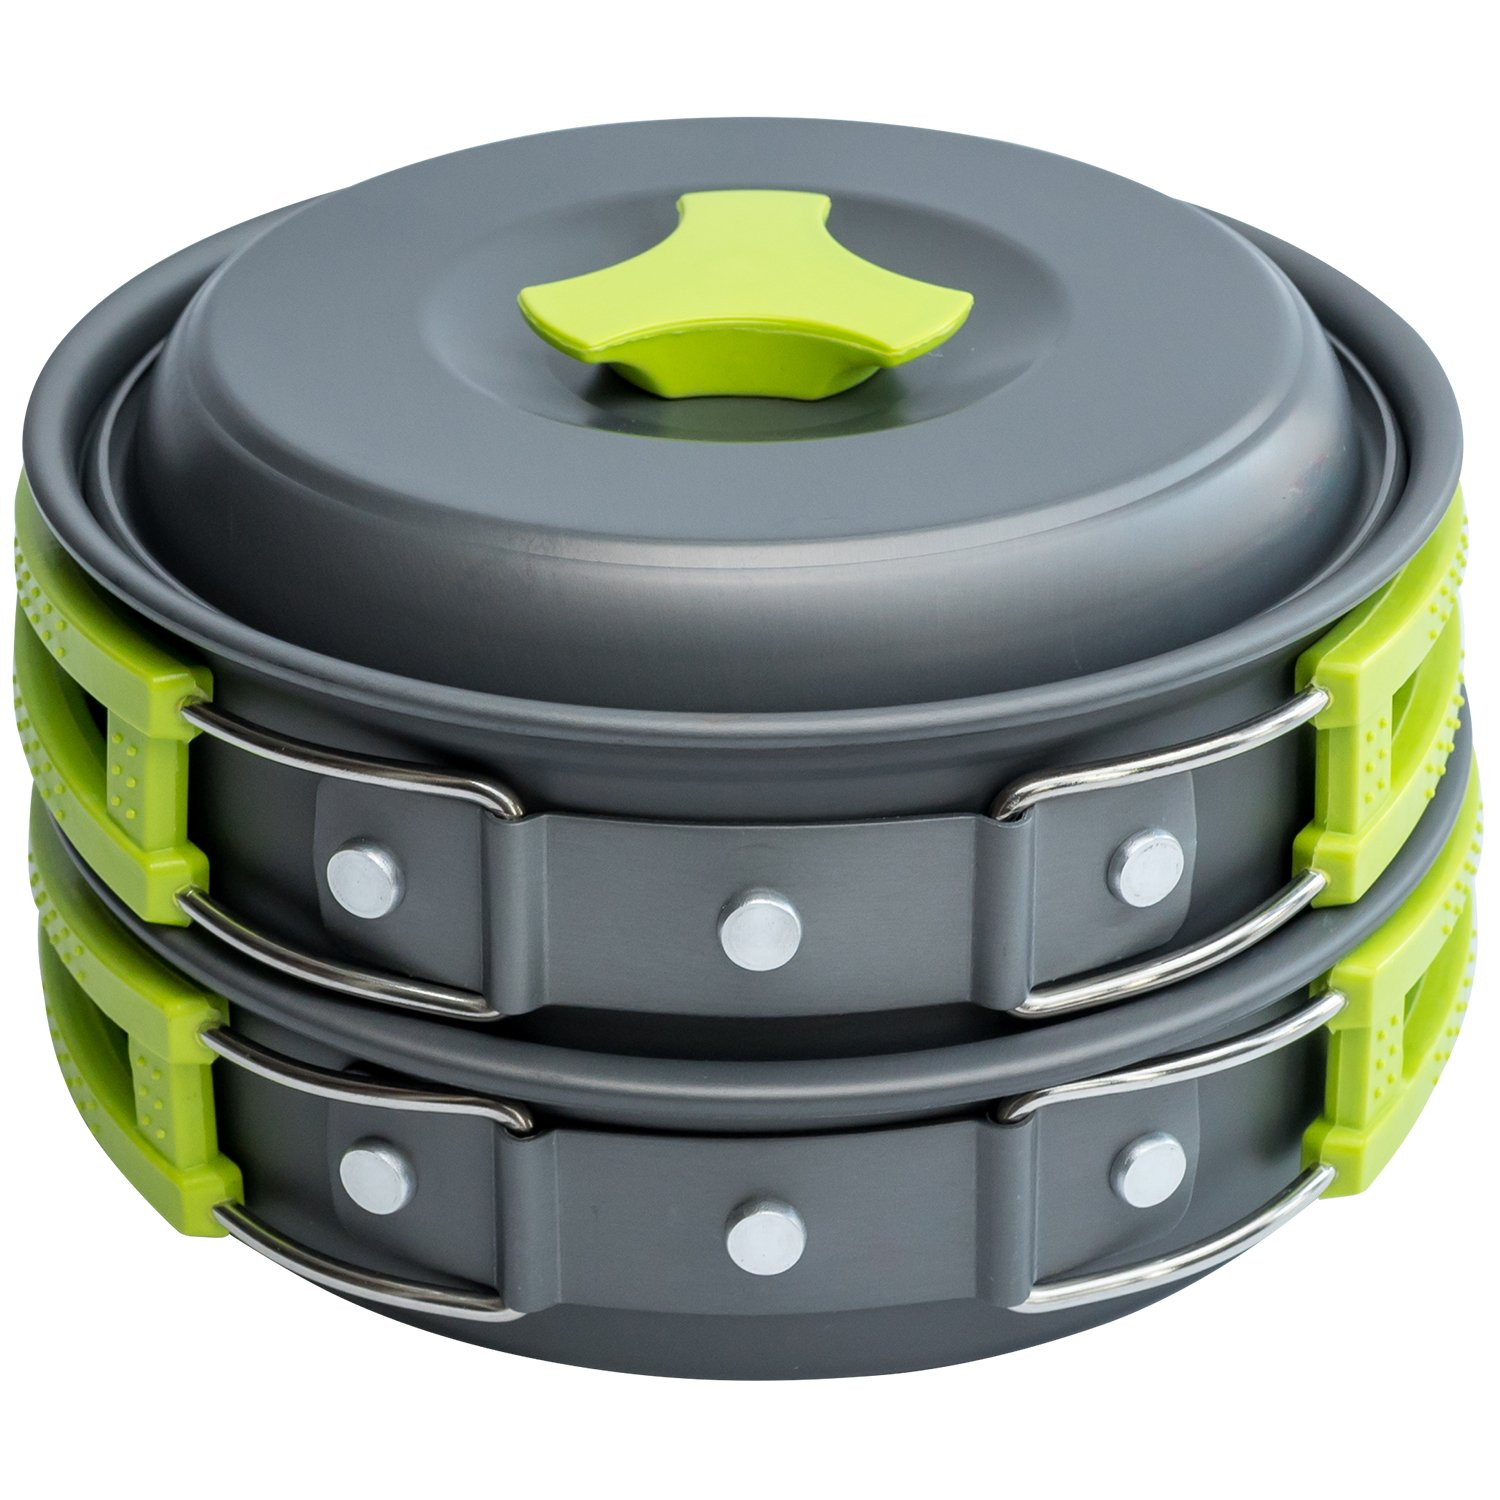 Camping Cookware By Mallome